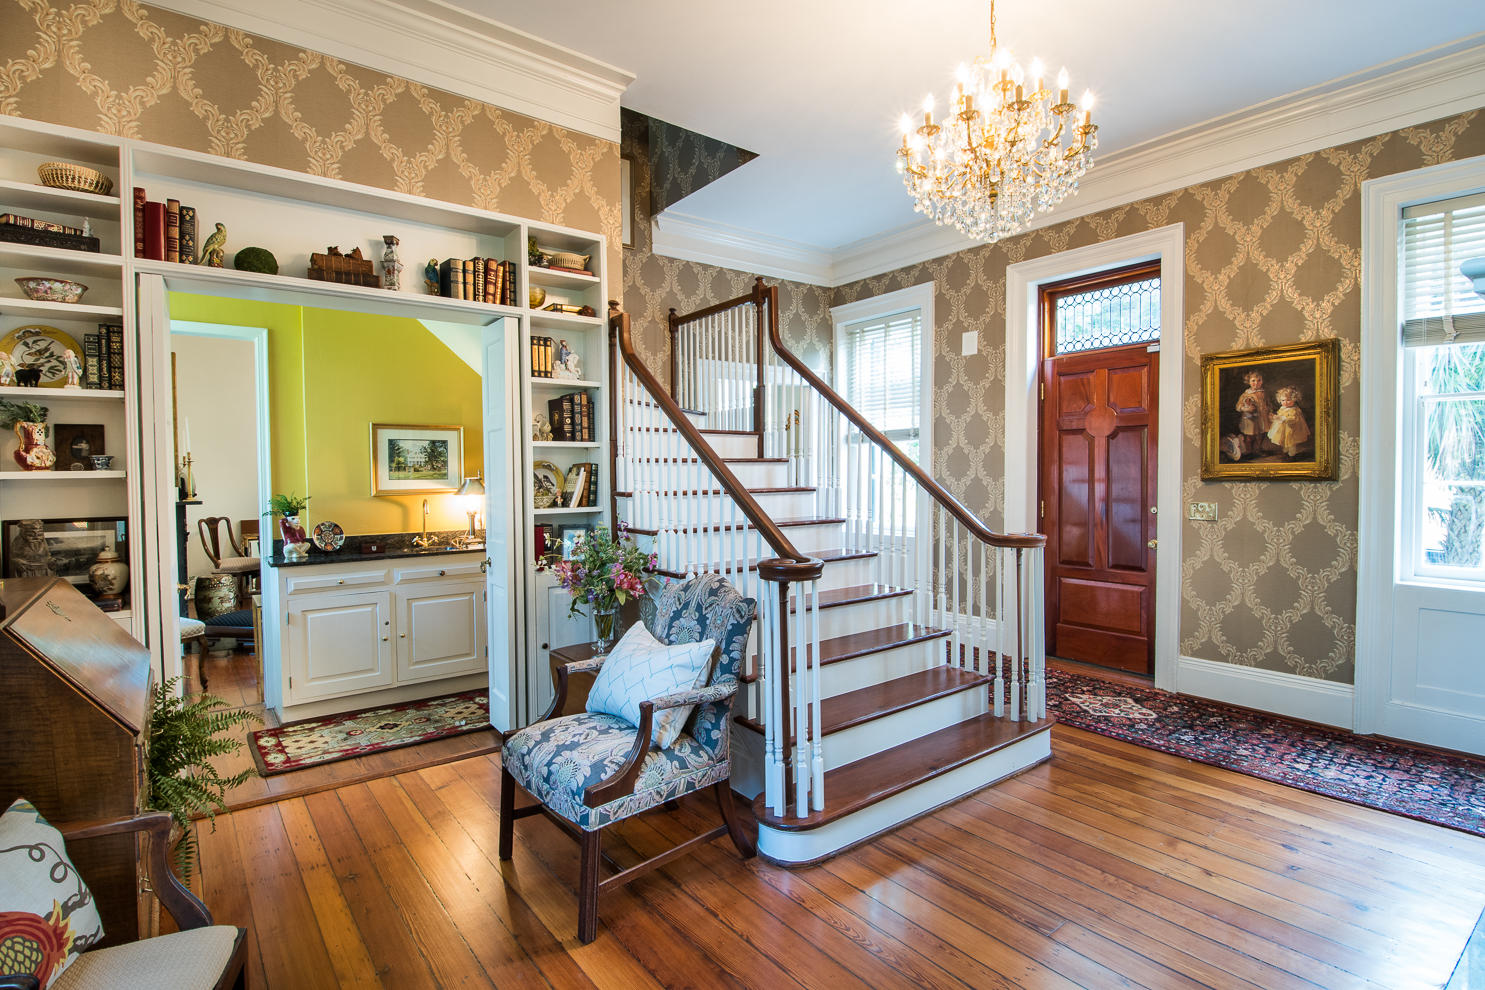 South of Broad Homes For Sale - 1 Prices, Charleston, SC - 9